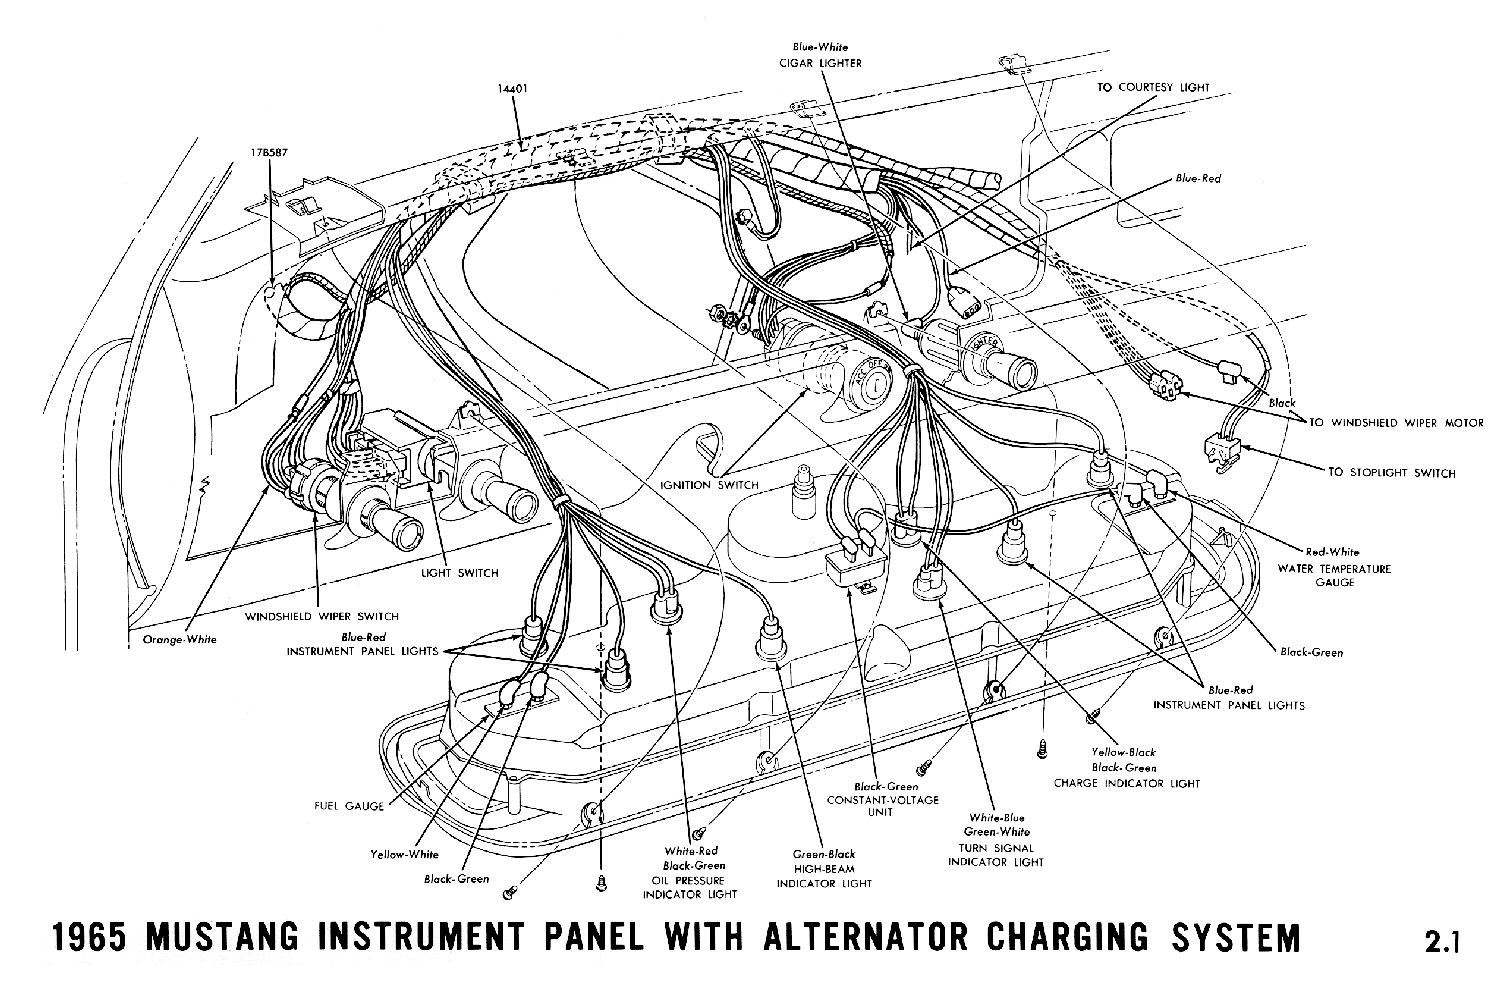 Gt Wiring Diagram Along With 1964 Ford Falcon Ignition Best268 Circuit Board Maintenance Clipon Magnifying Glass Alex Nld 1965 Mustang Diagrams Average Joe Restoration Rh Averagejoerestoration Com